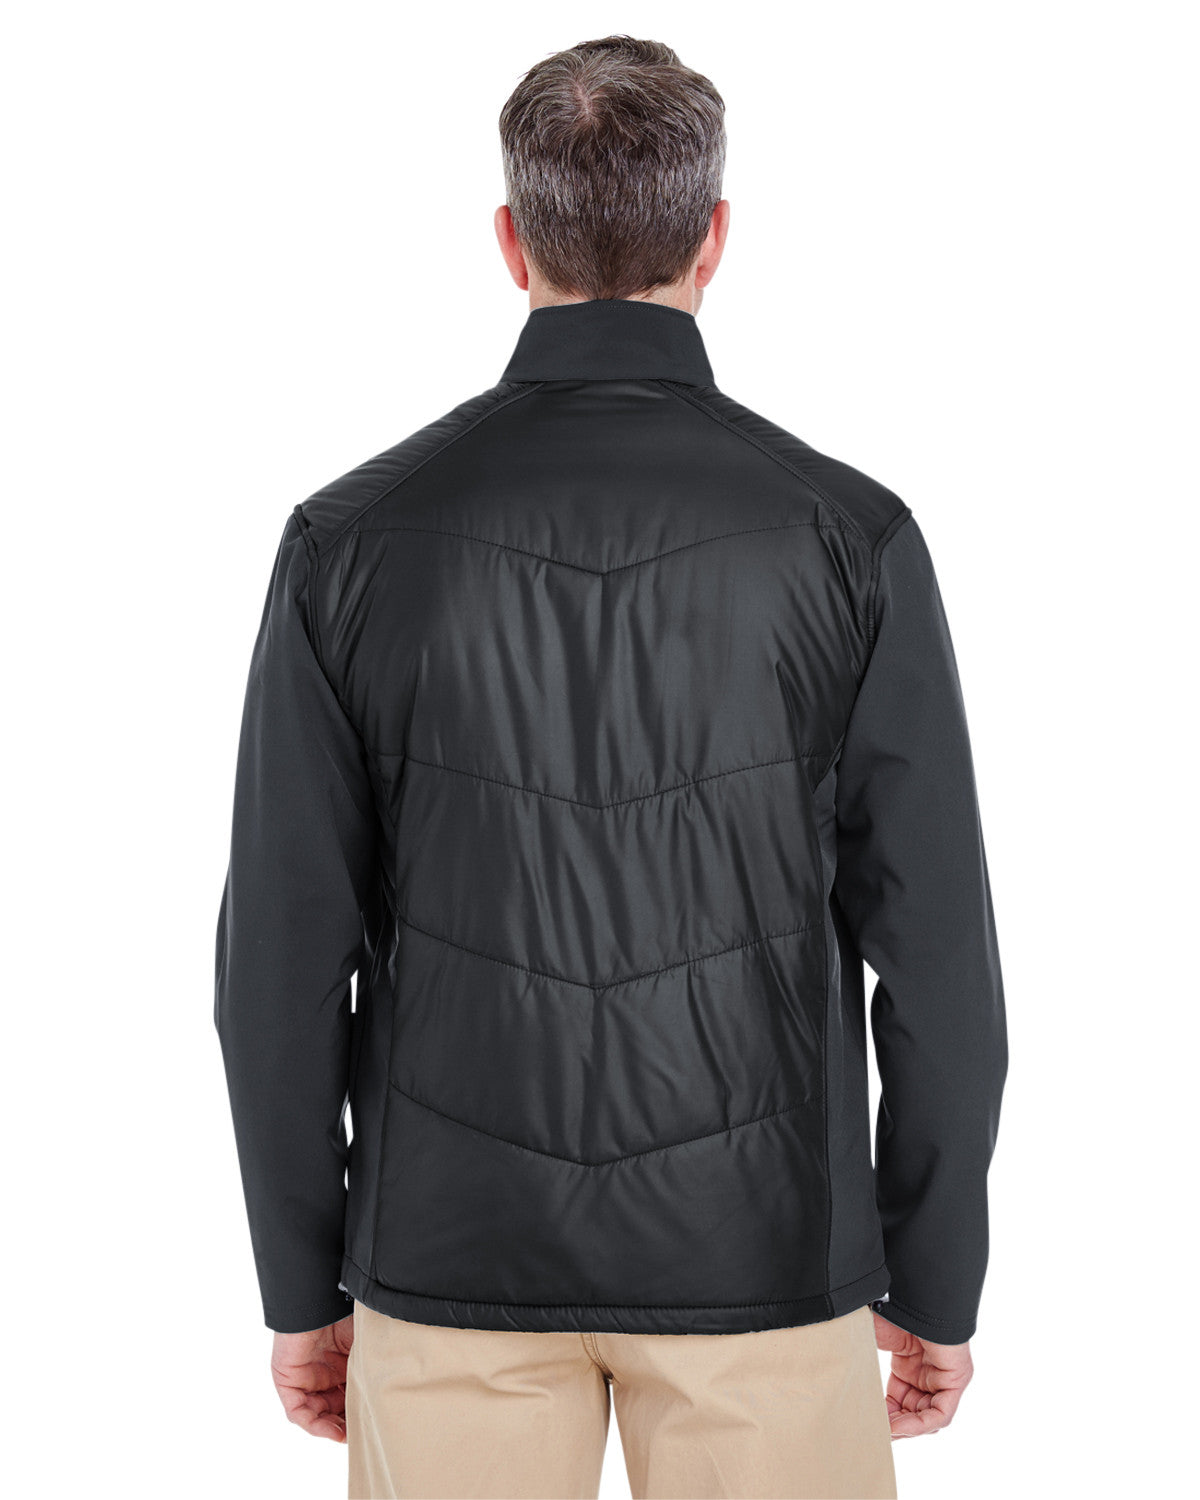 Adult Soft Shell Jacket with Quilted Front & Back by Ultraclub